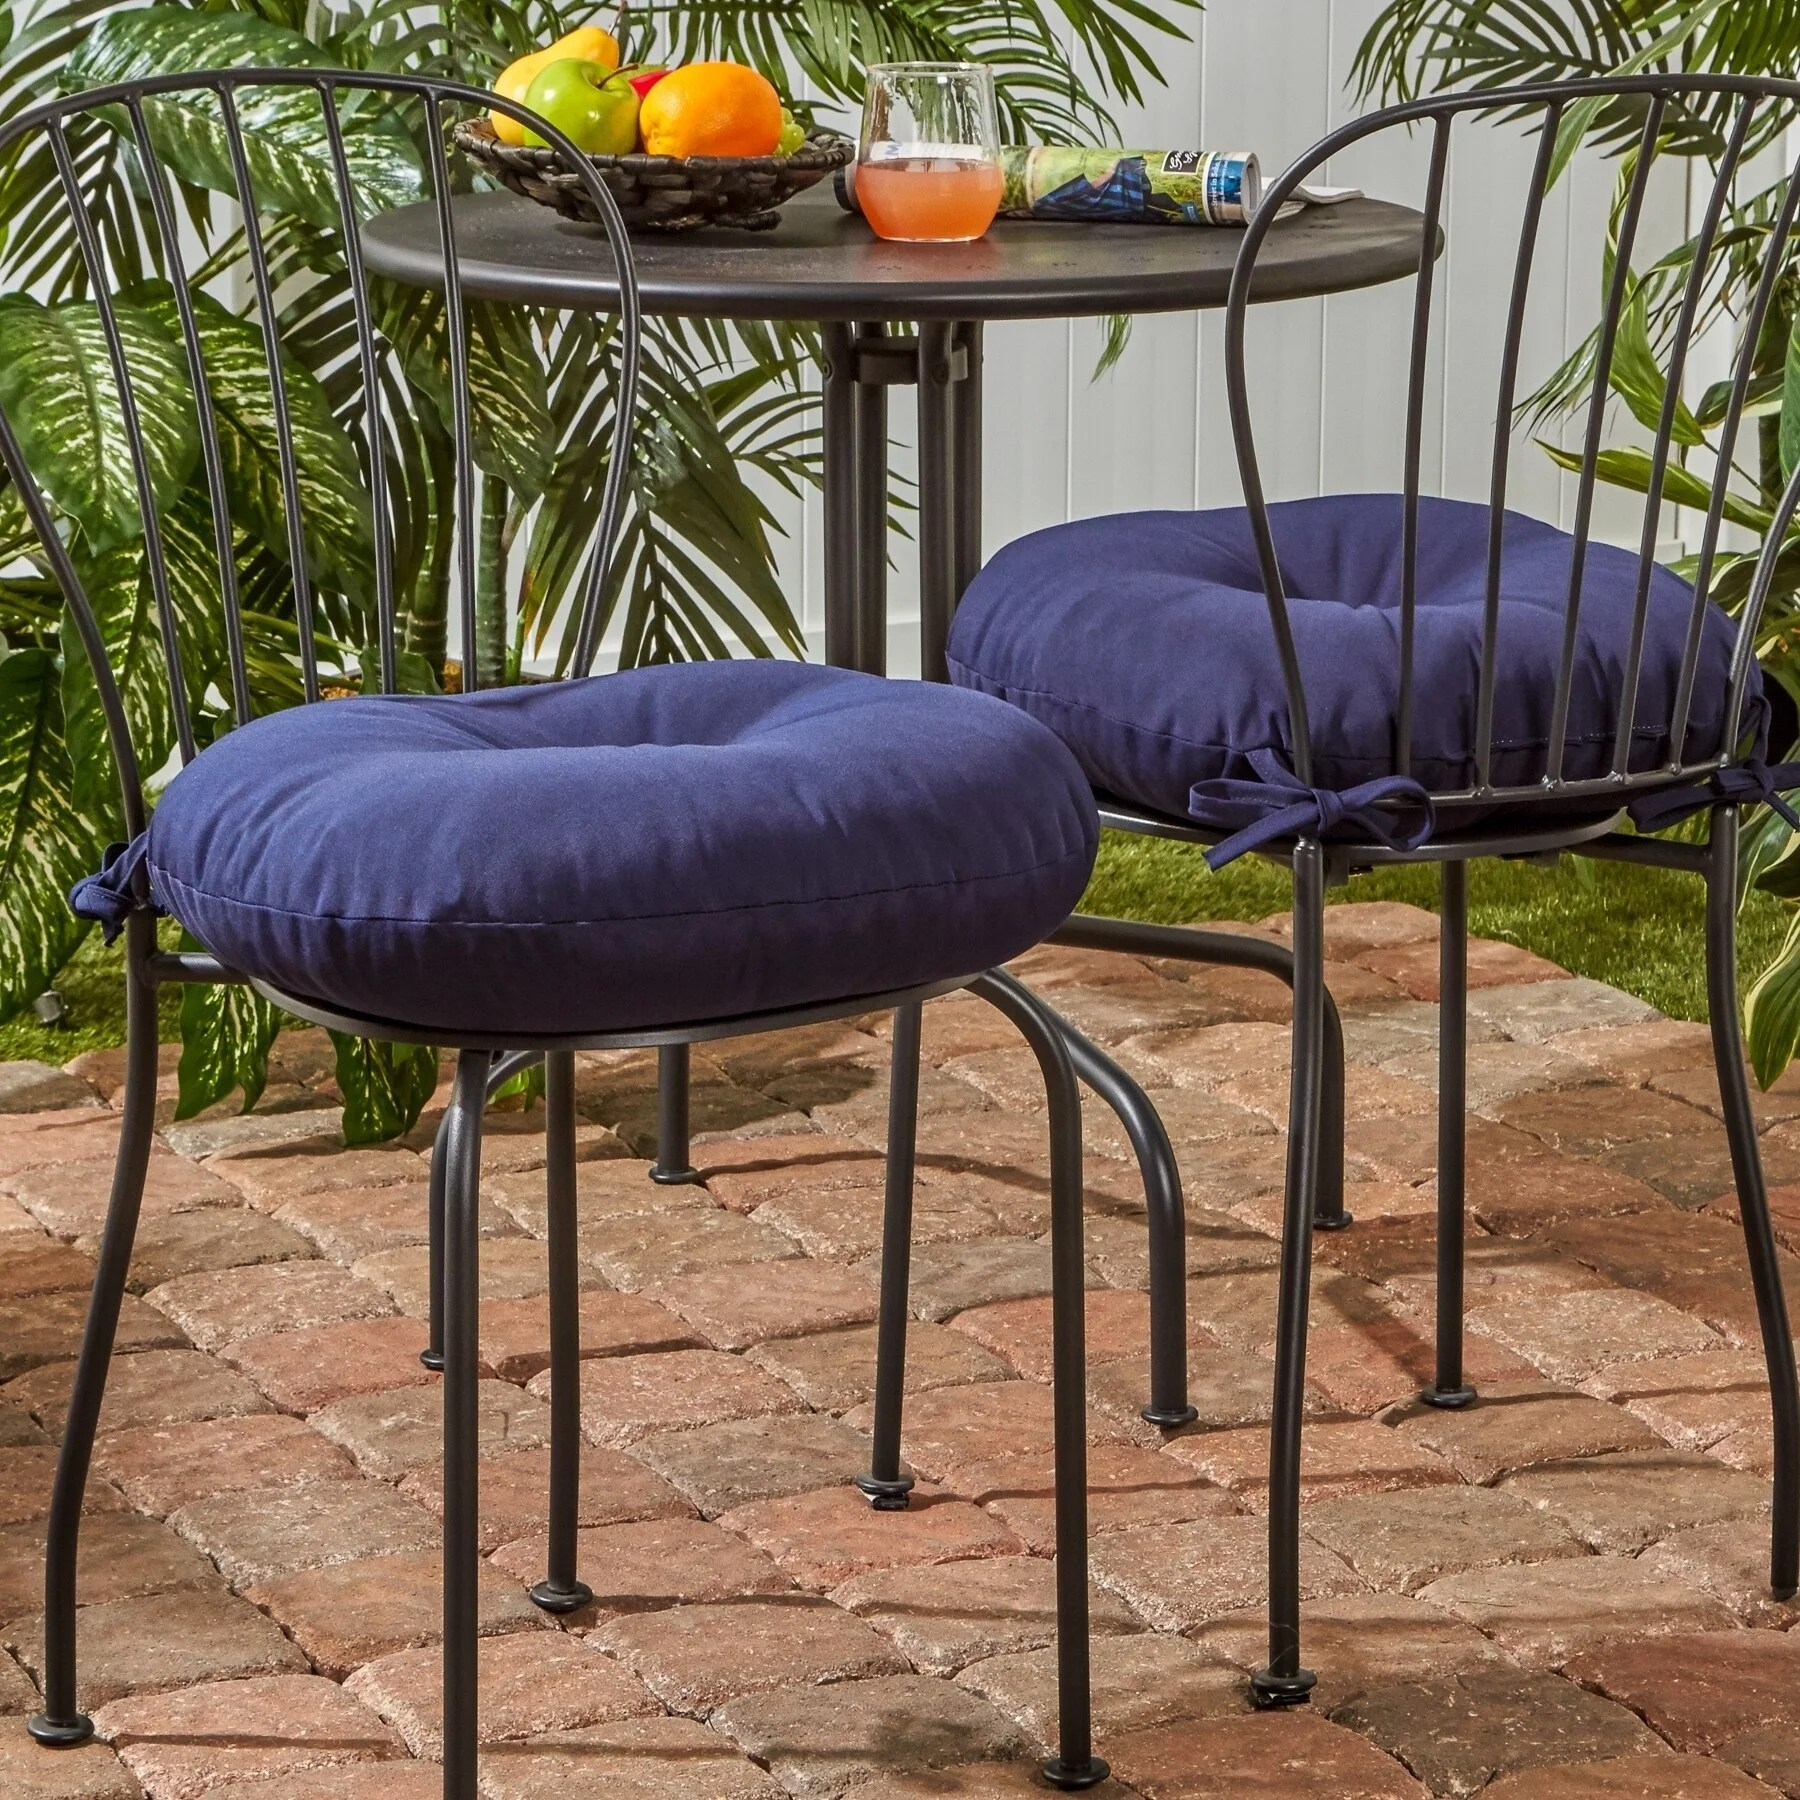 driftwood 18 inch round outdoor bistro chair cushion set of 2 by havenside home 18w x 18l